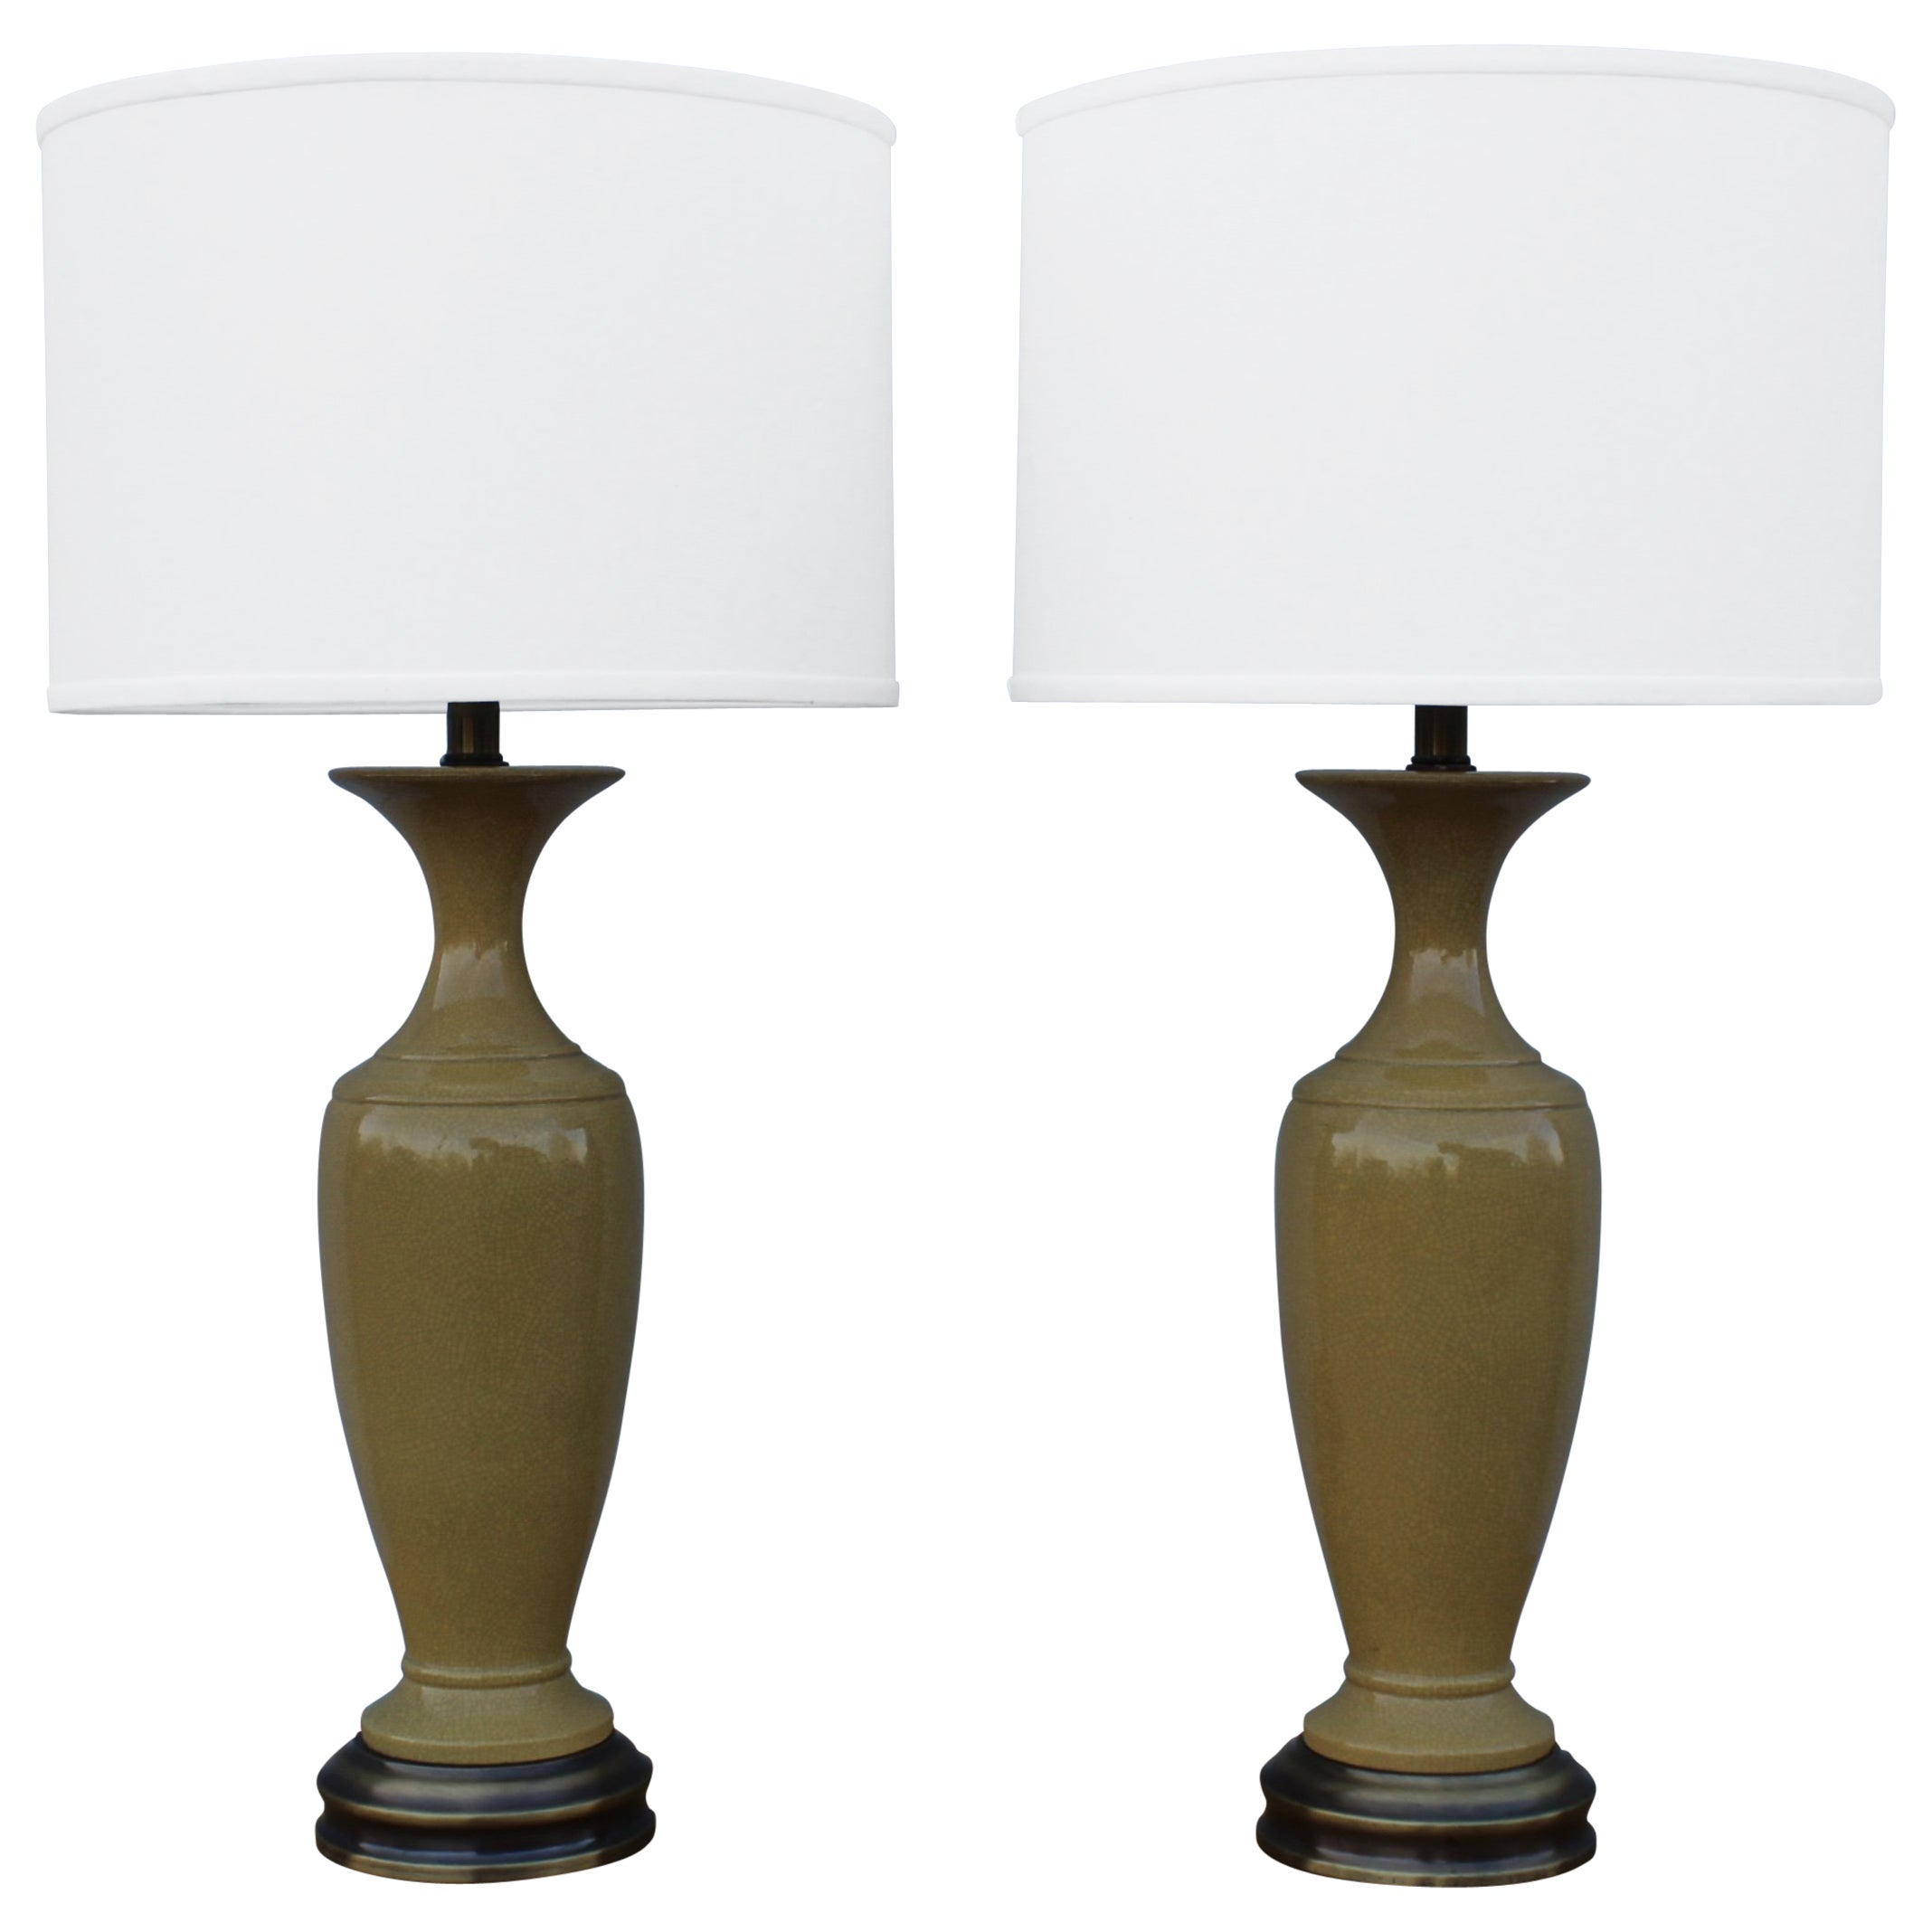 1960s Crackled Ceramic Table Lamps